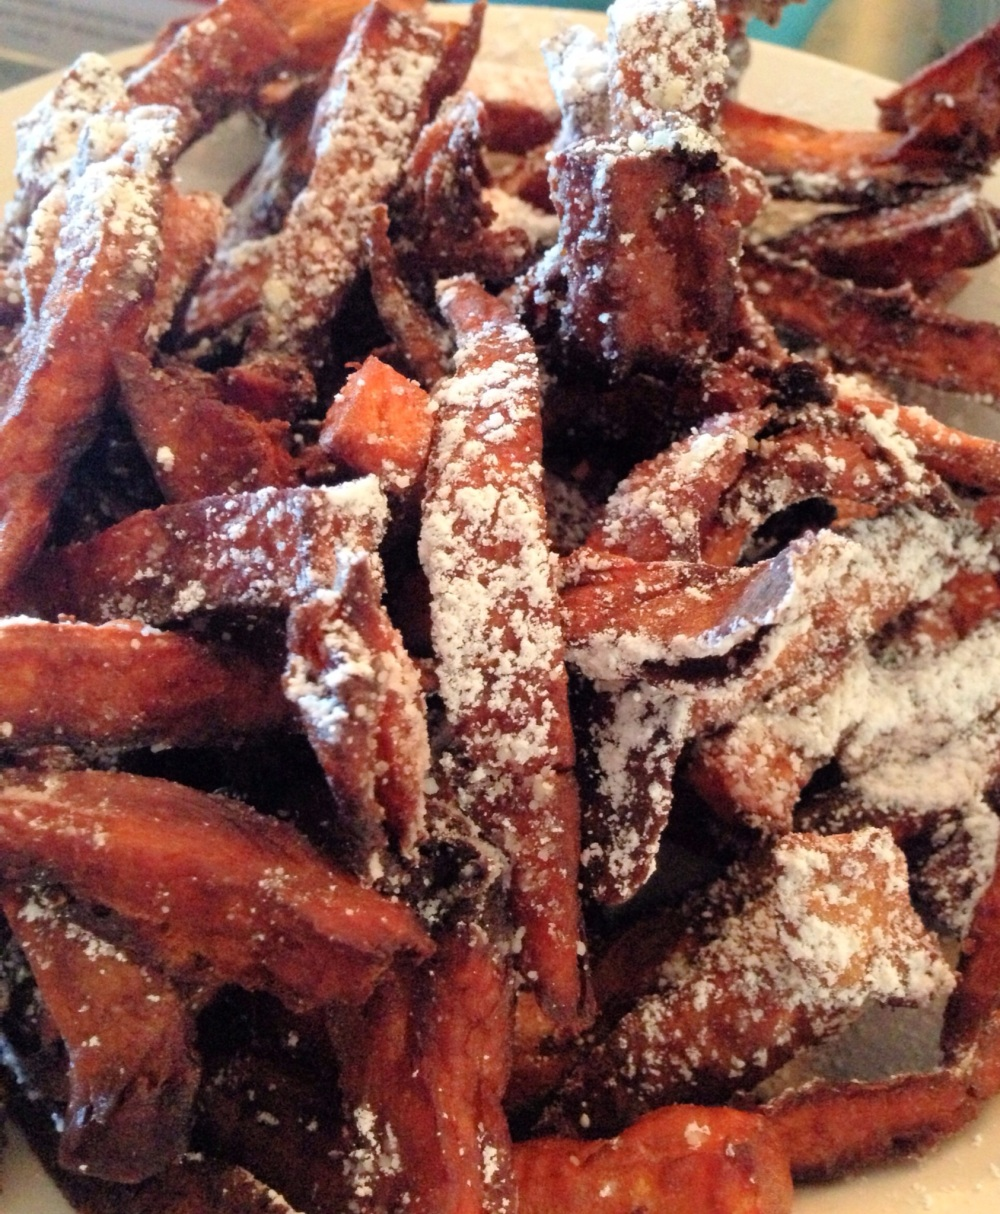 Sabrina's sweet potato fries - love!